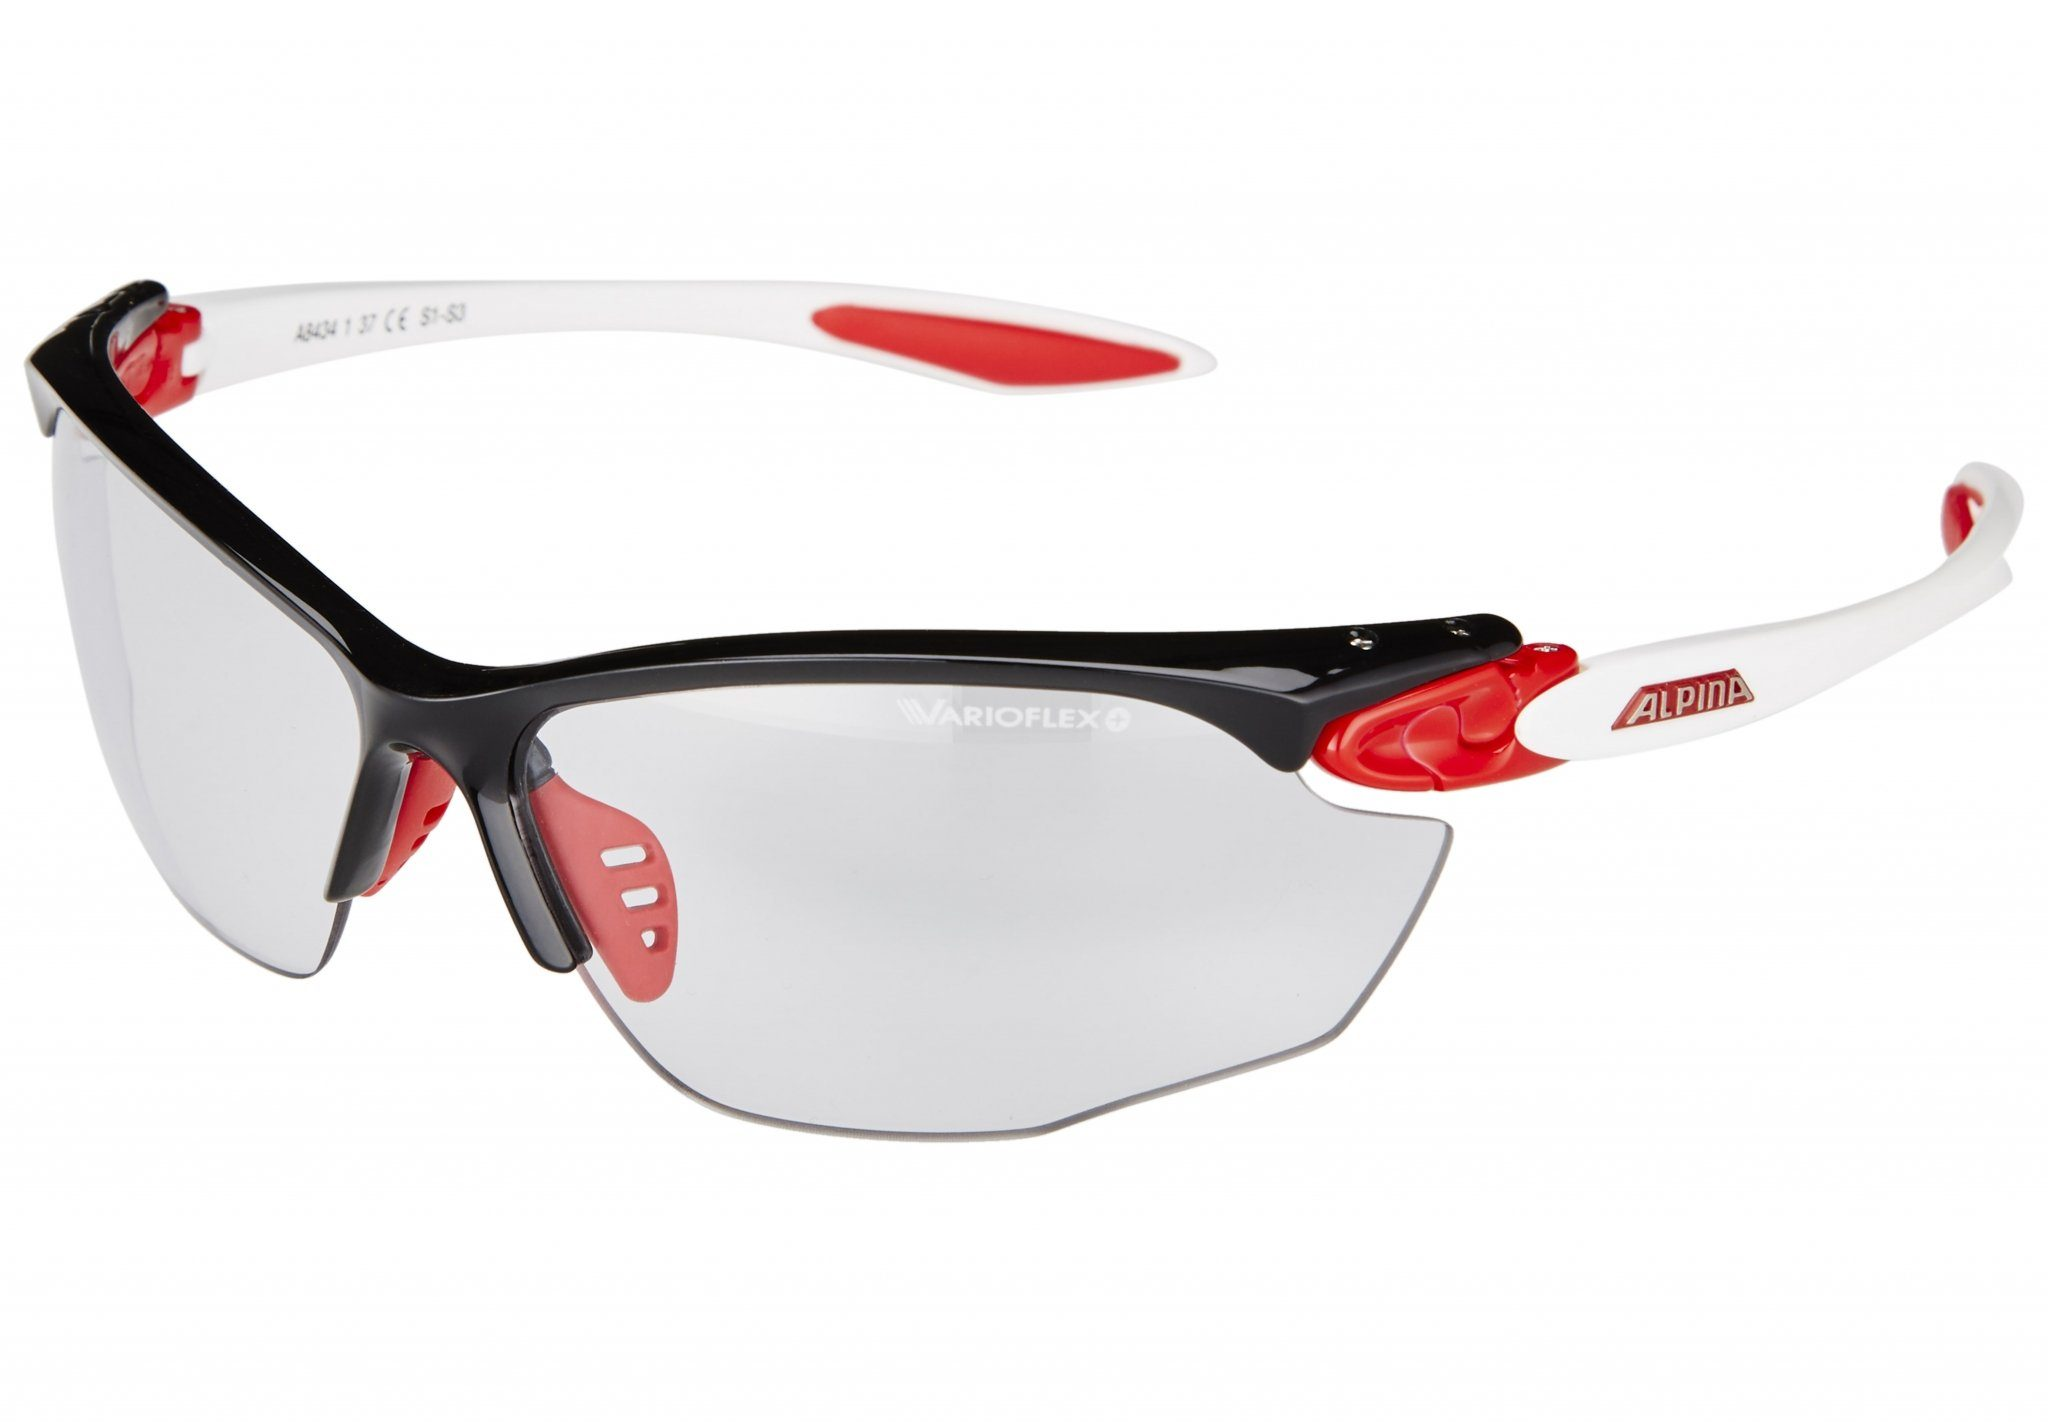 Alpina Radsportbrille »Twist Four VL+«